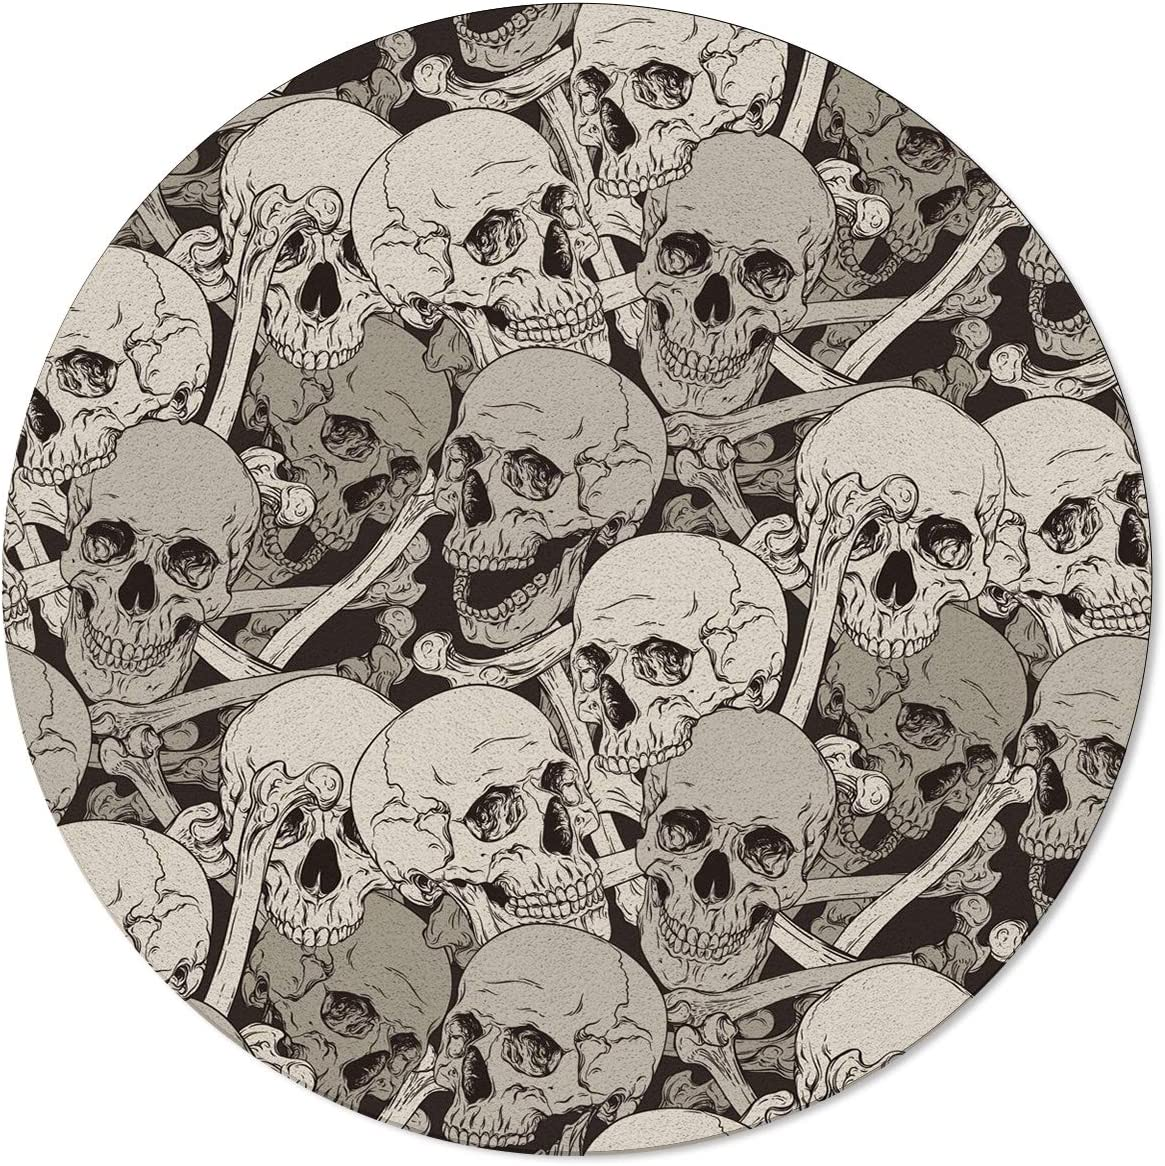 ARTSHOWING Super beauty product restock quality top Skulls Round Area Rug Dining Room Non-Slip Max 63% OFF Entryway